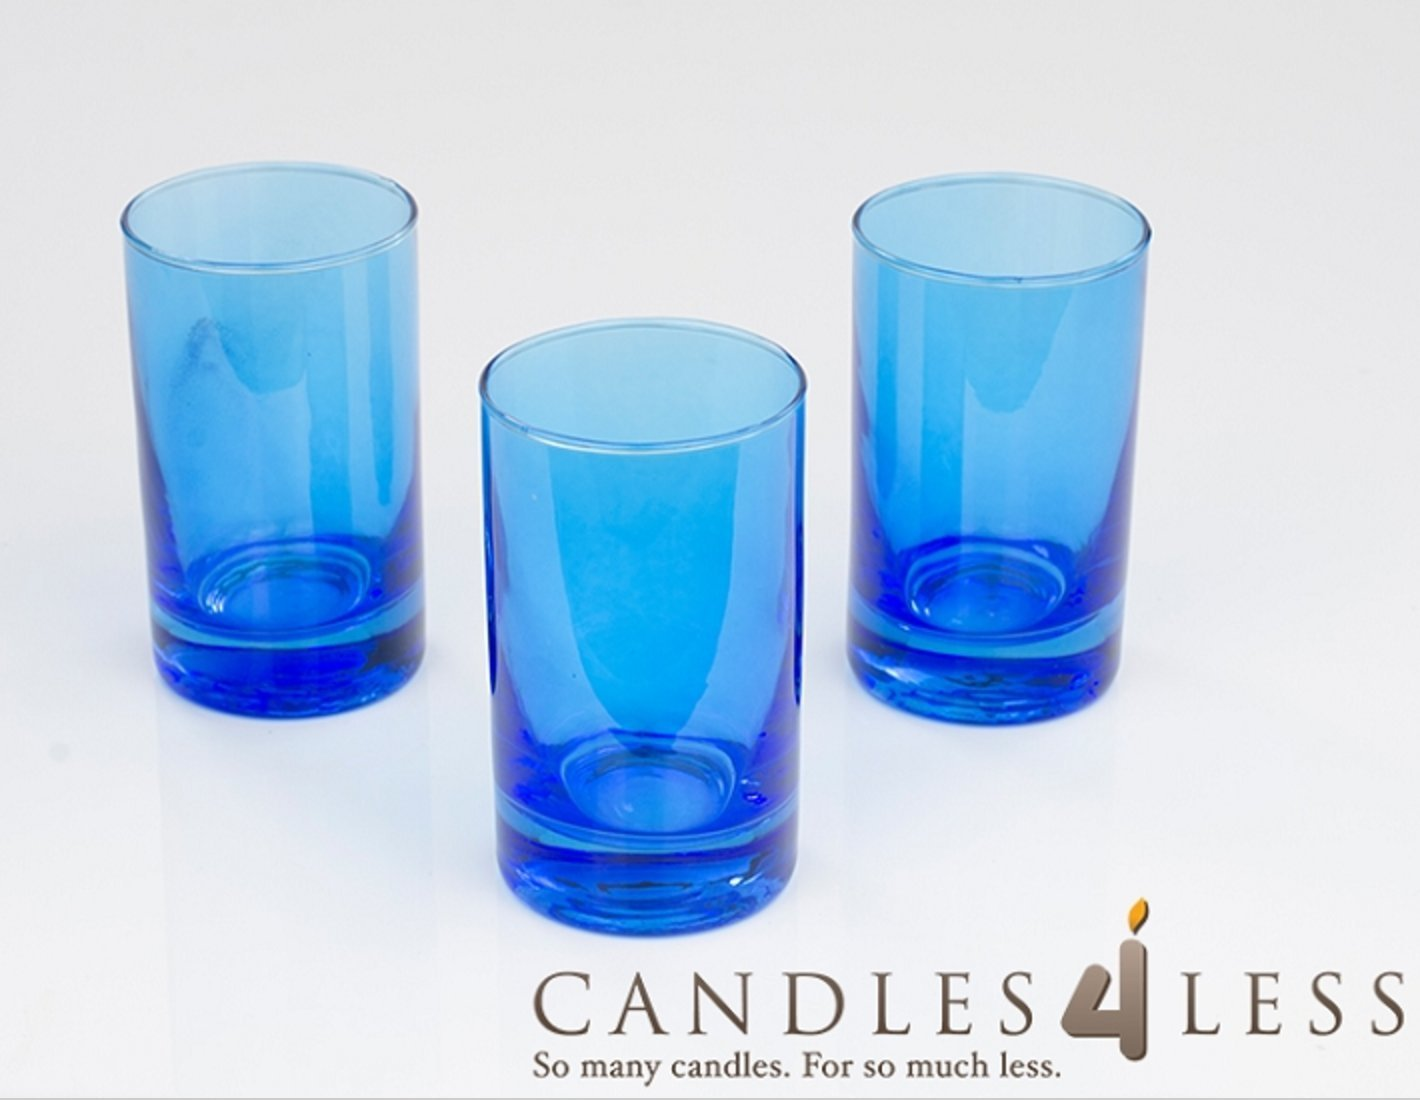 Candles4Less - 4 Inch Tall Blue Votive Holders (Set of 72) Perfect for restaurants, Hotels, Spas and Events